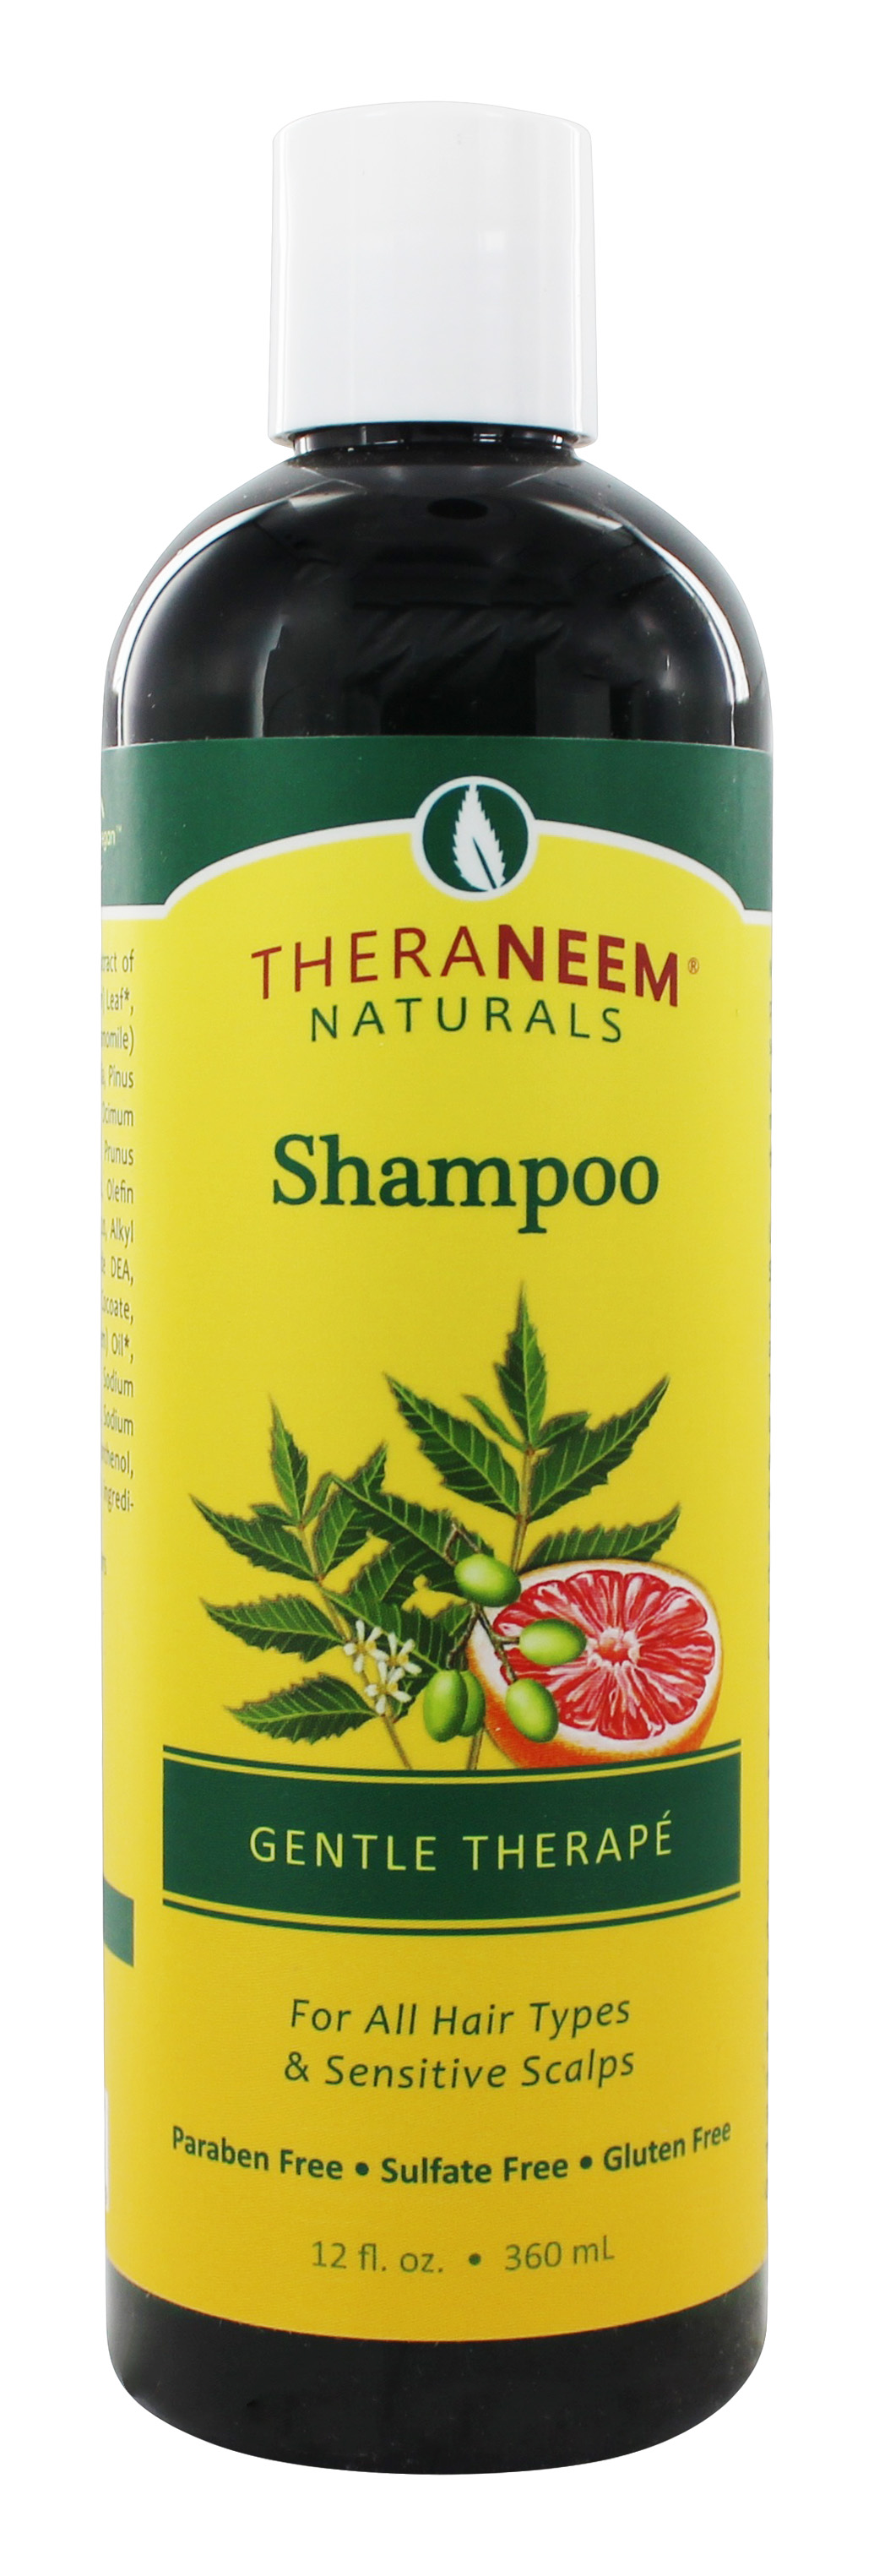 Organix South - TheraNeem Organix Shampoo Gentle Therape - 12 oz. (666183000079)